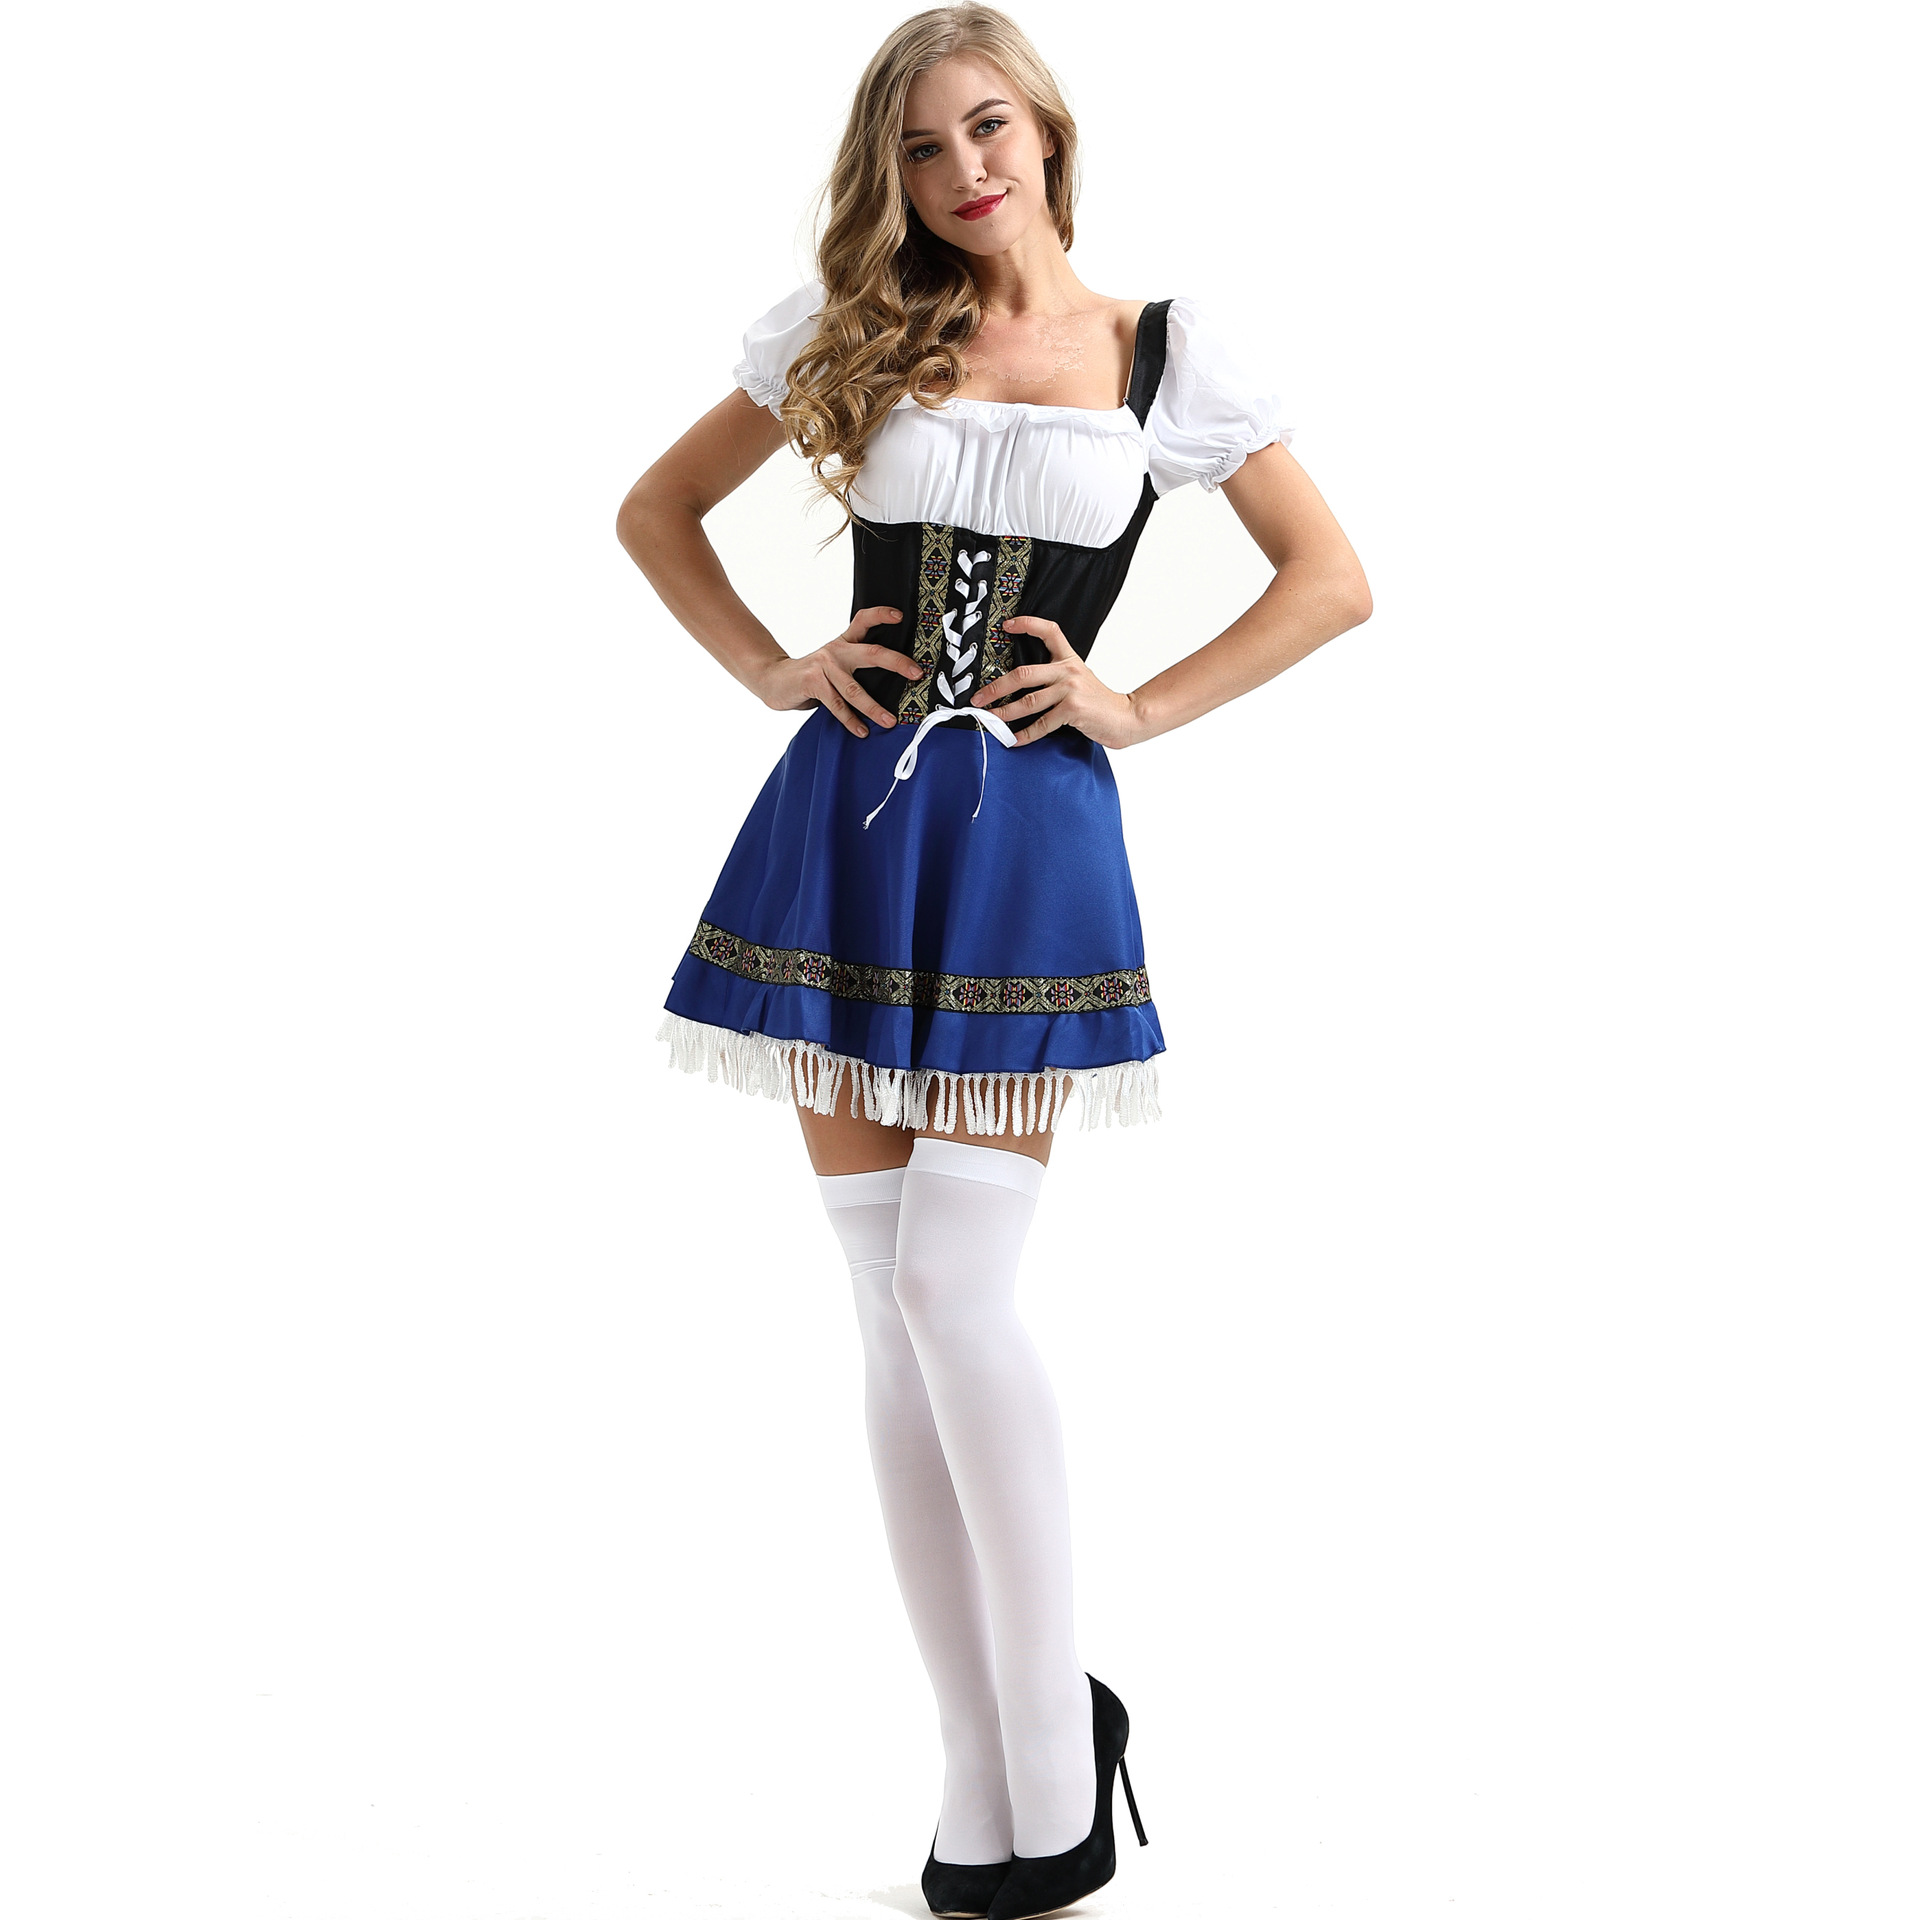 <font><b>Halloween</b></font> Party Game Cosplay Waitress Maid <font><b>Costume</b></font> <font><b>Sexy</b></font> <font><b>Blue</b></font> Bavarian Oktoberfest <font><b>Women</b></font> Dress <font><b>Costume</b></font> S-3XL C45575AD image